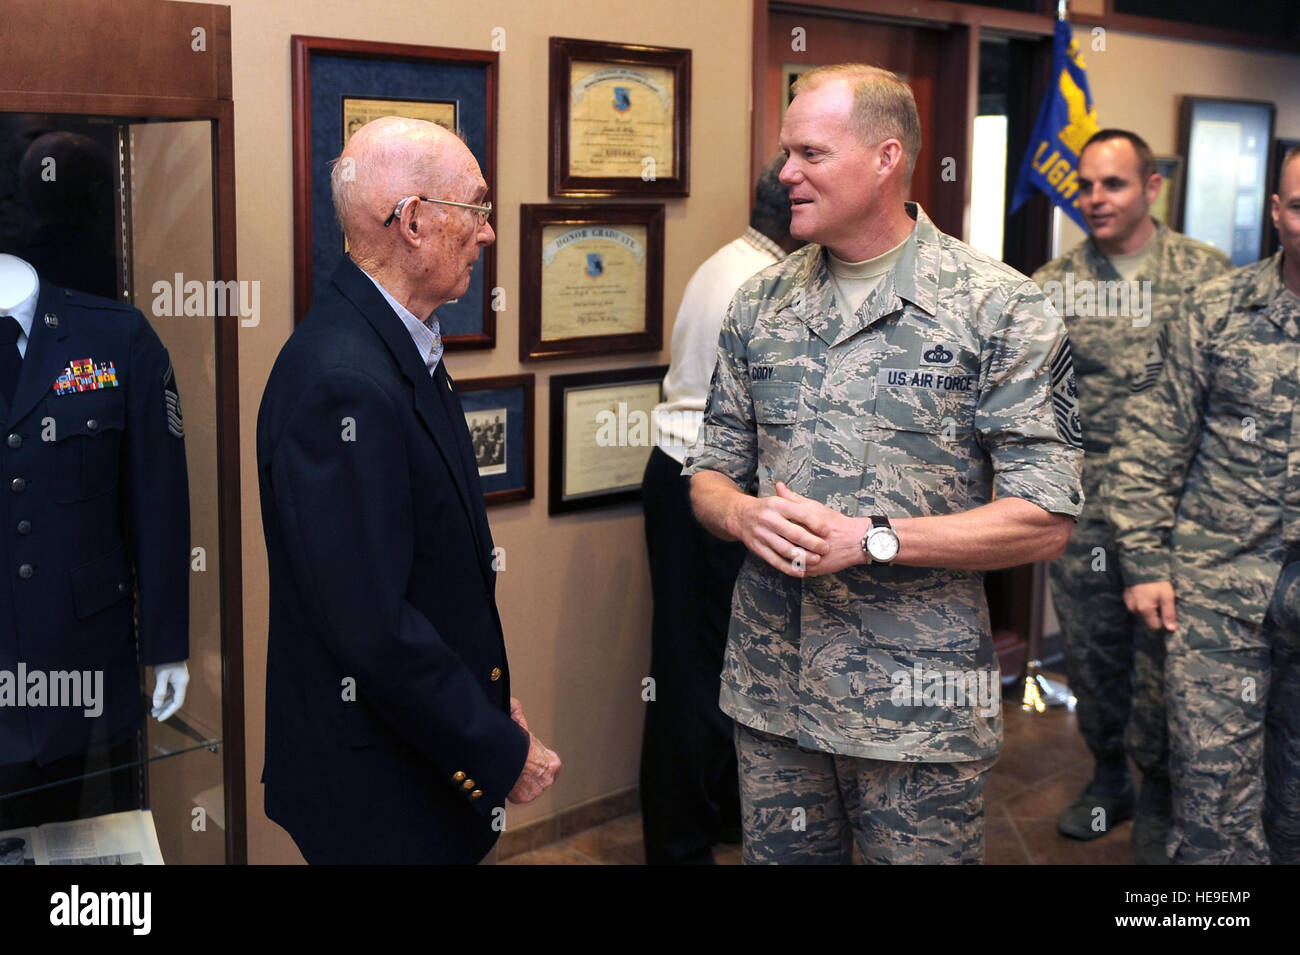 45f40db5aee Retired 6th Chief Master Sergeant of the Air Force James McCoy speaks with  the current CMSAF James Cody at the James M. McCoy Airman Leadership School  March ...